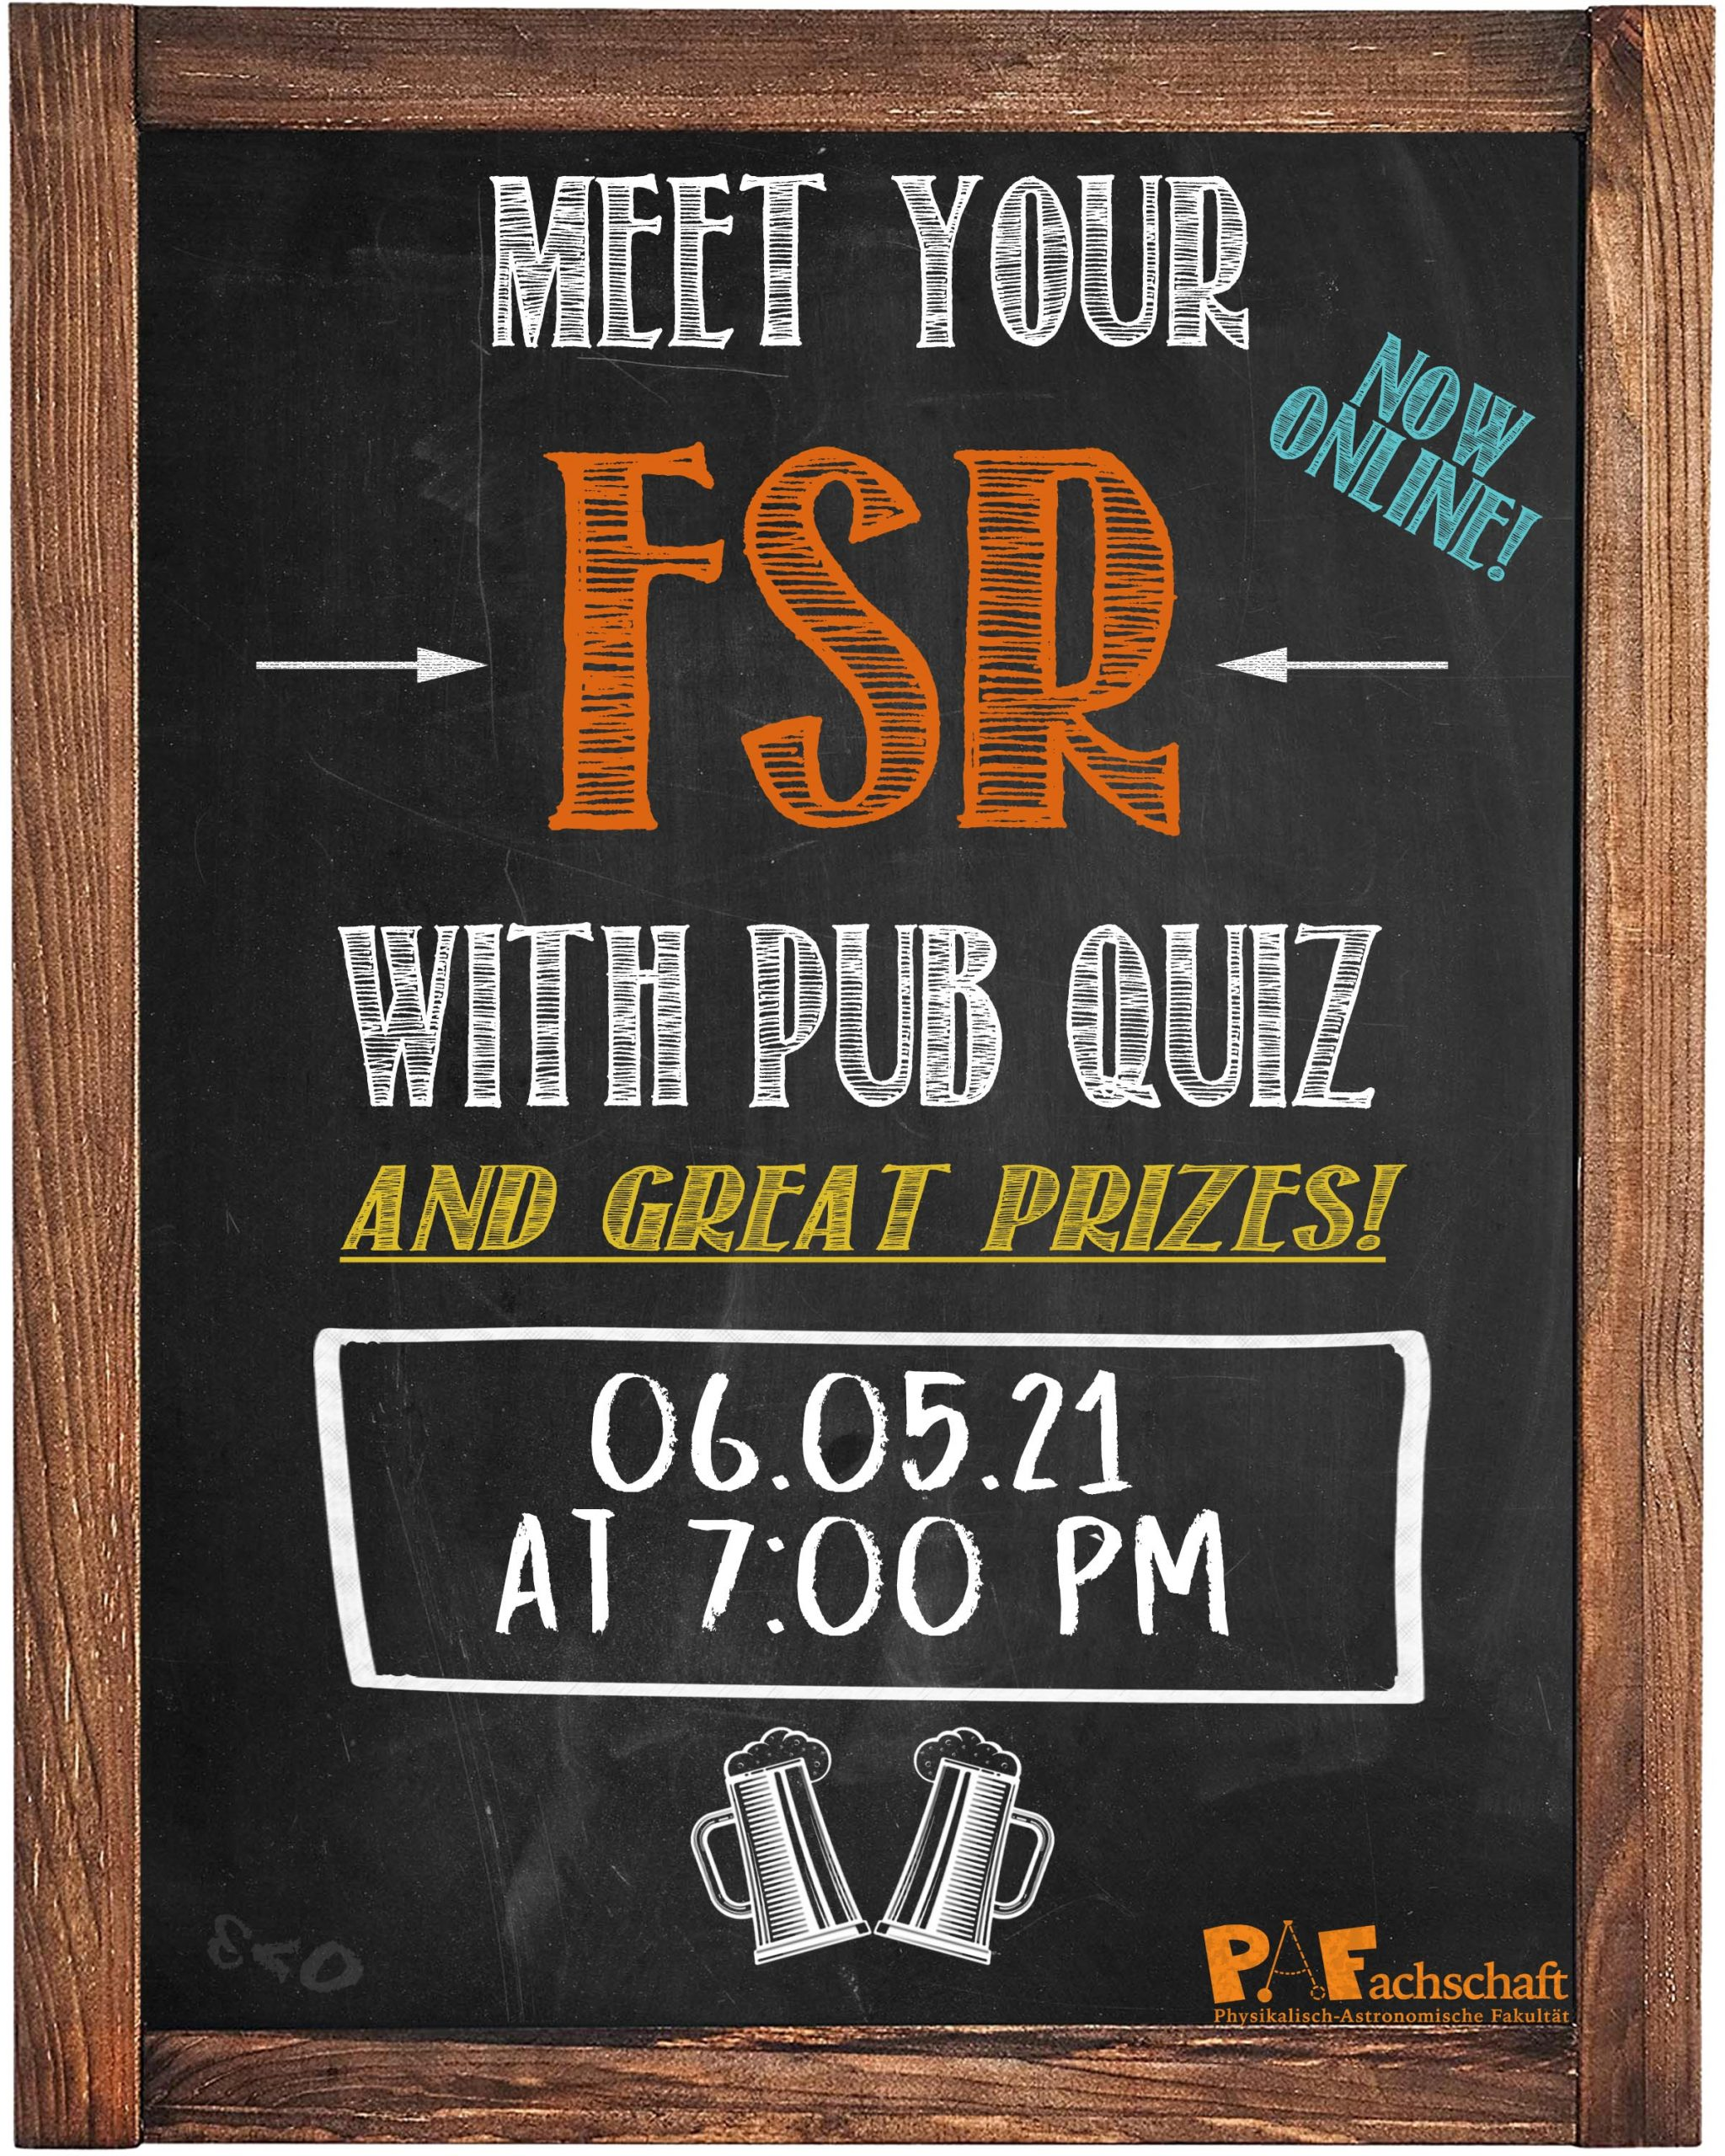 Meet Your FSR Pub Quiz – 06.05.21 07:00 pm